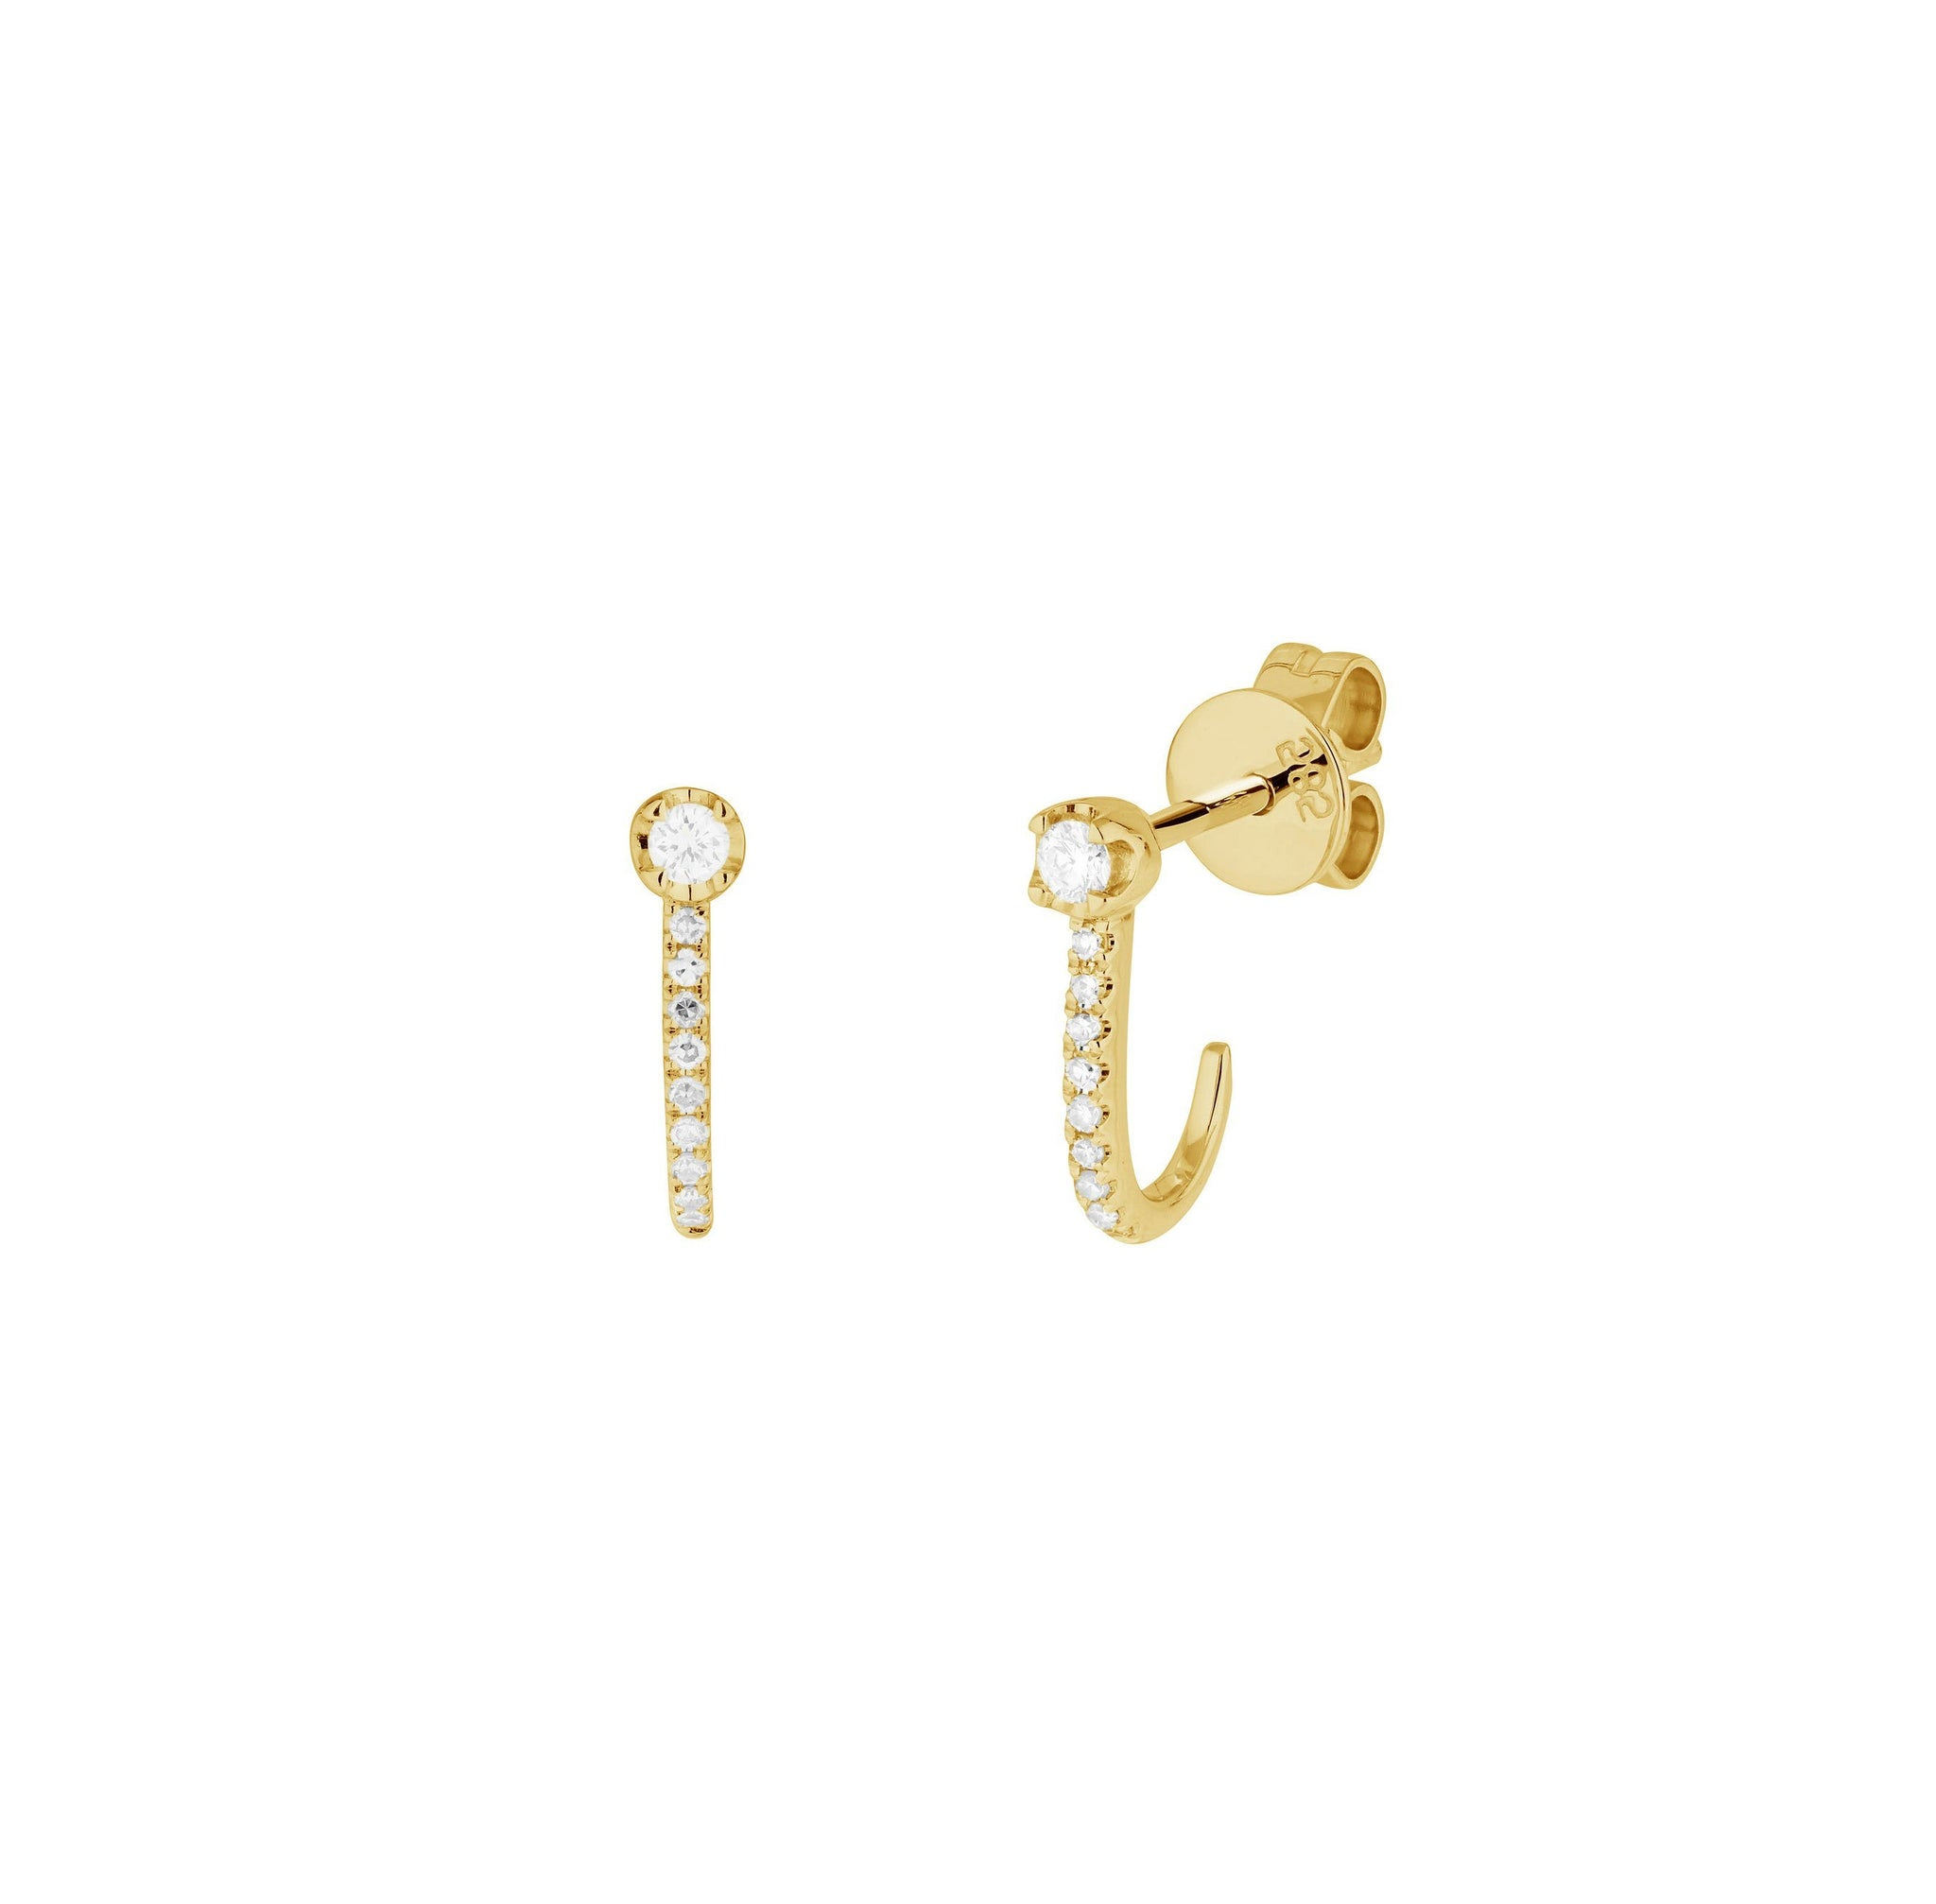 Earrings - Diamond Hook Earrings